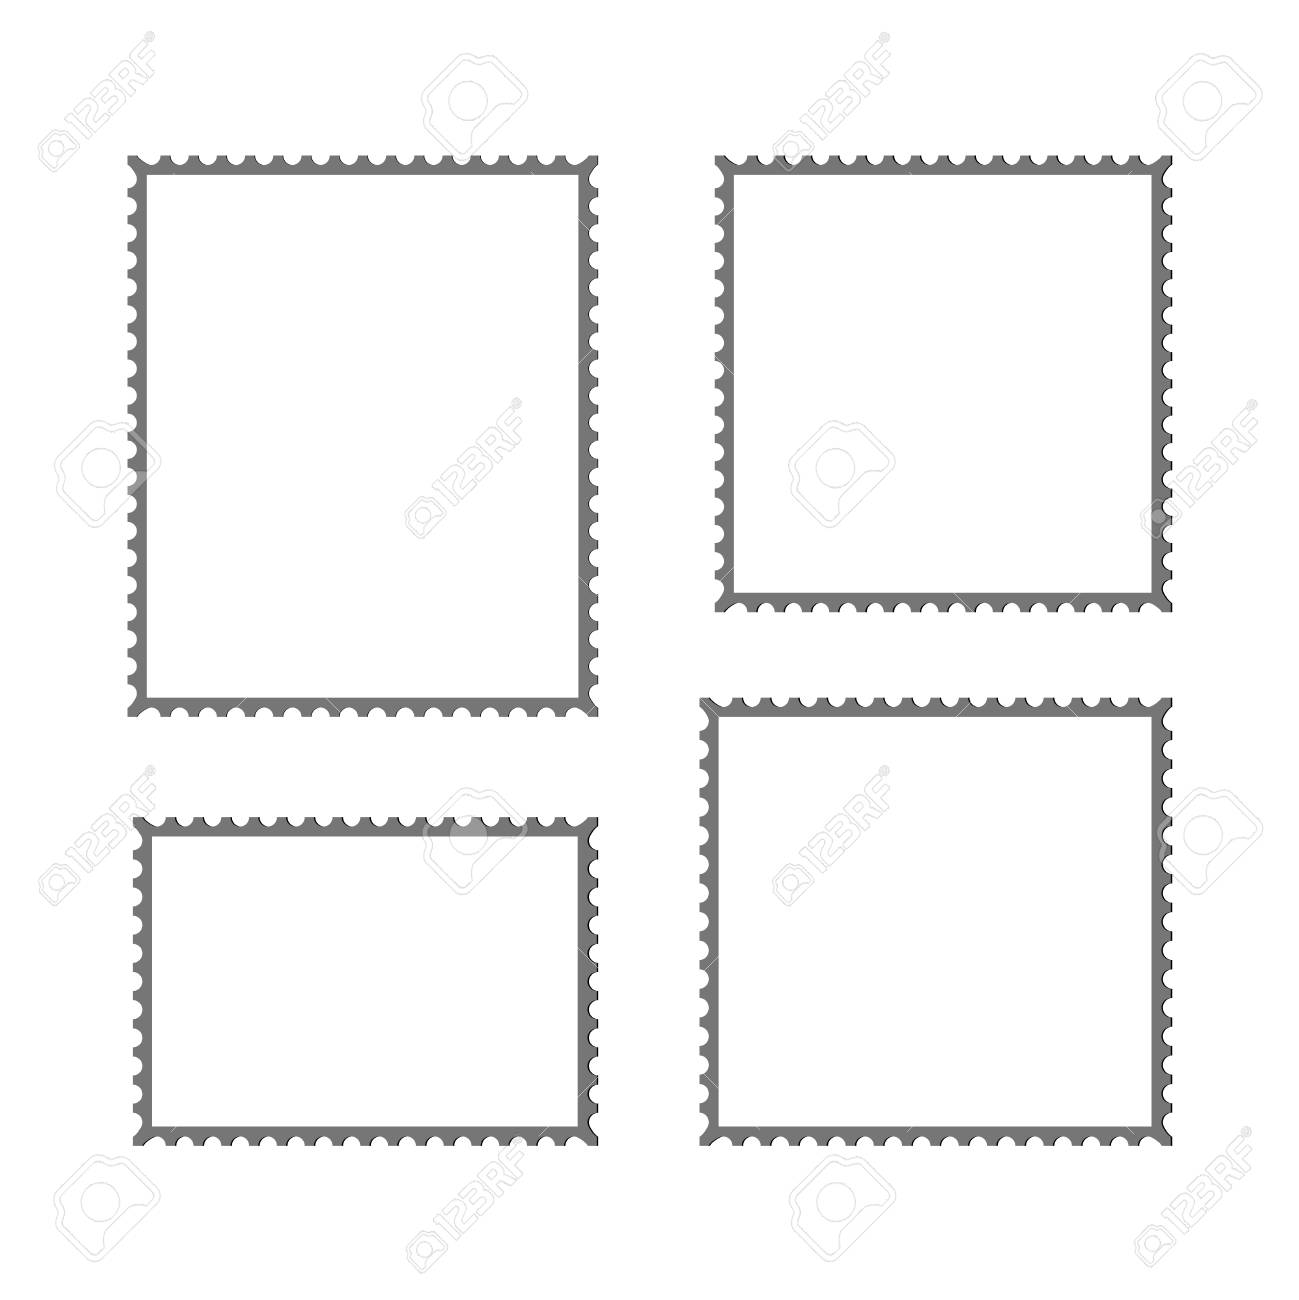 Postage Stamp Vector Blank Mockup Square Template Post Border Stock